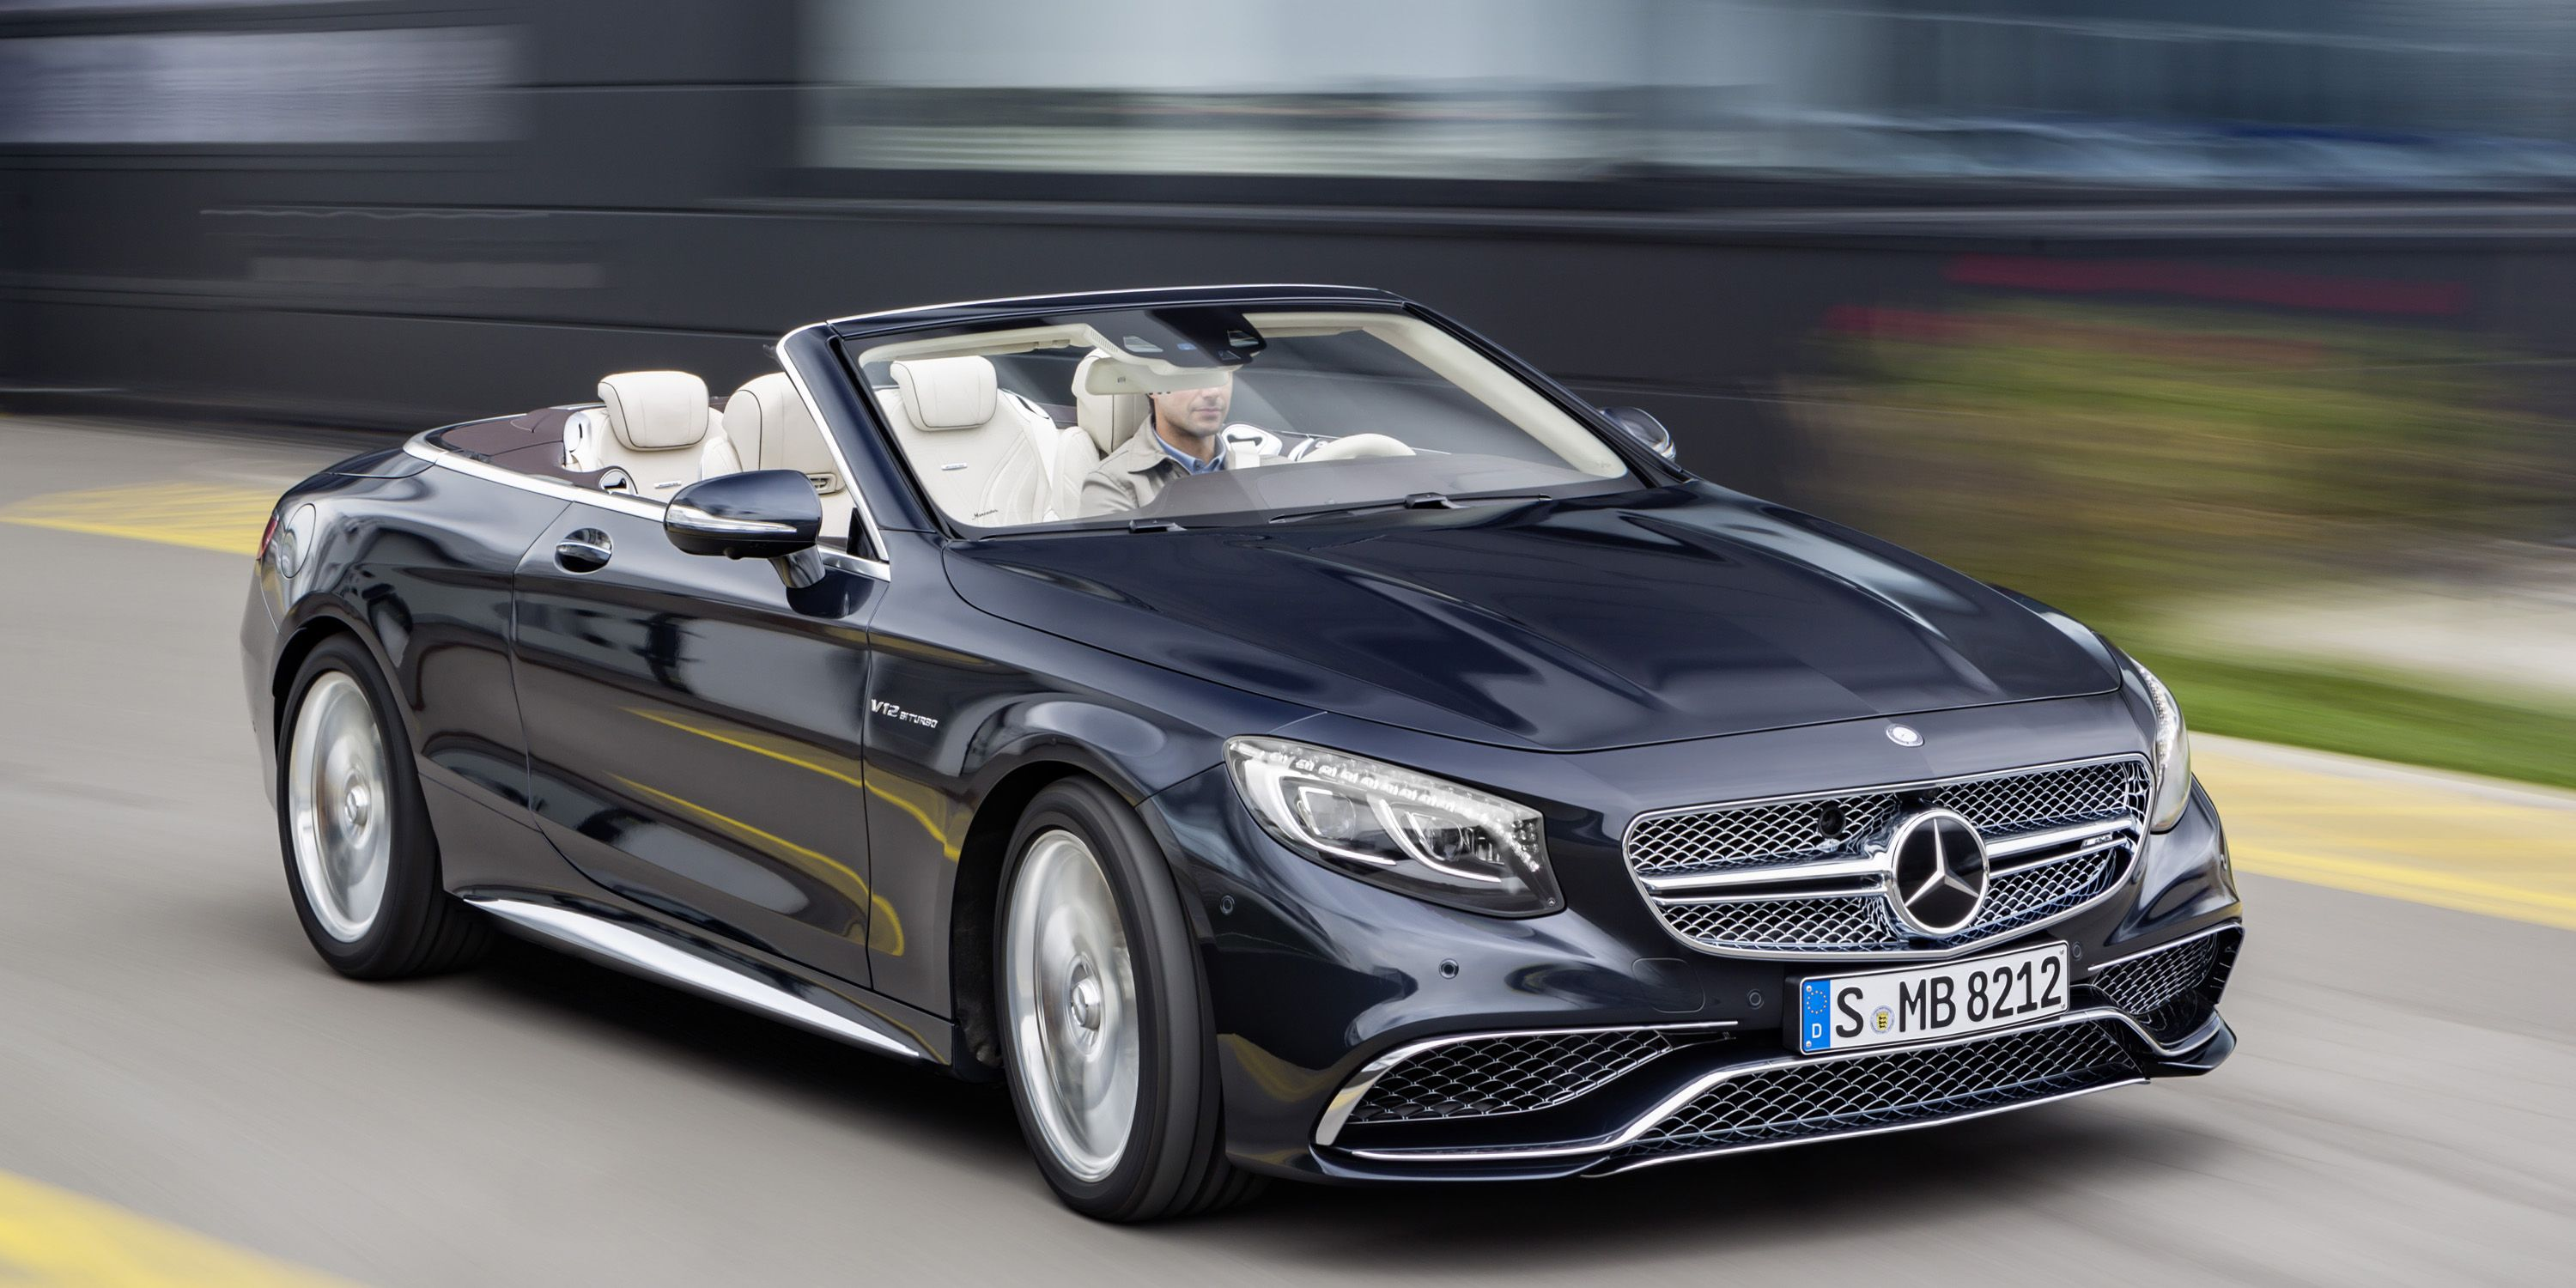 2017 Mercedes Amg S65 Cabrio Loses Top Keeps Everything Else The Same